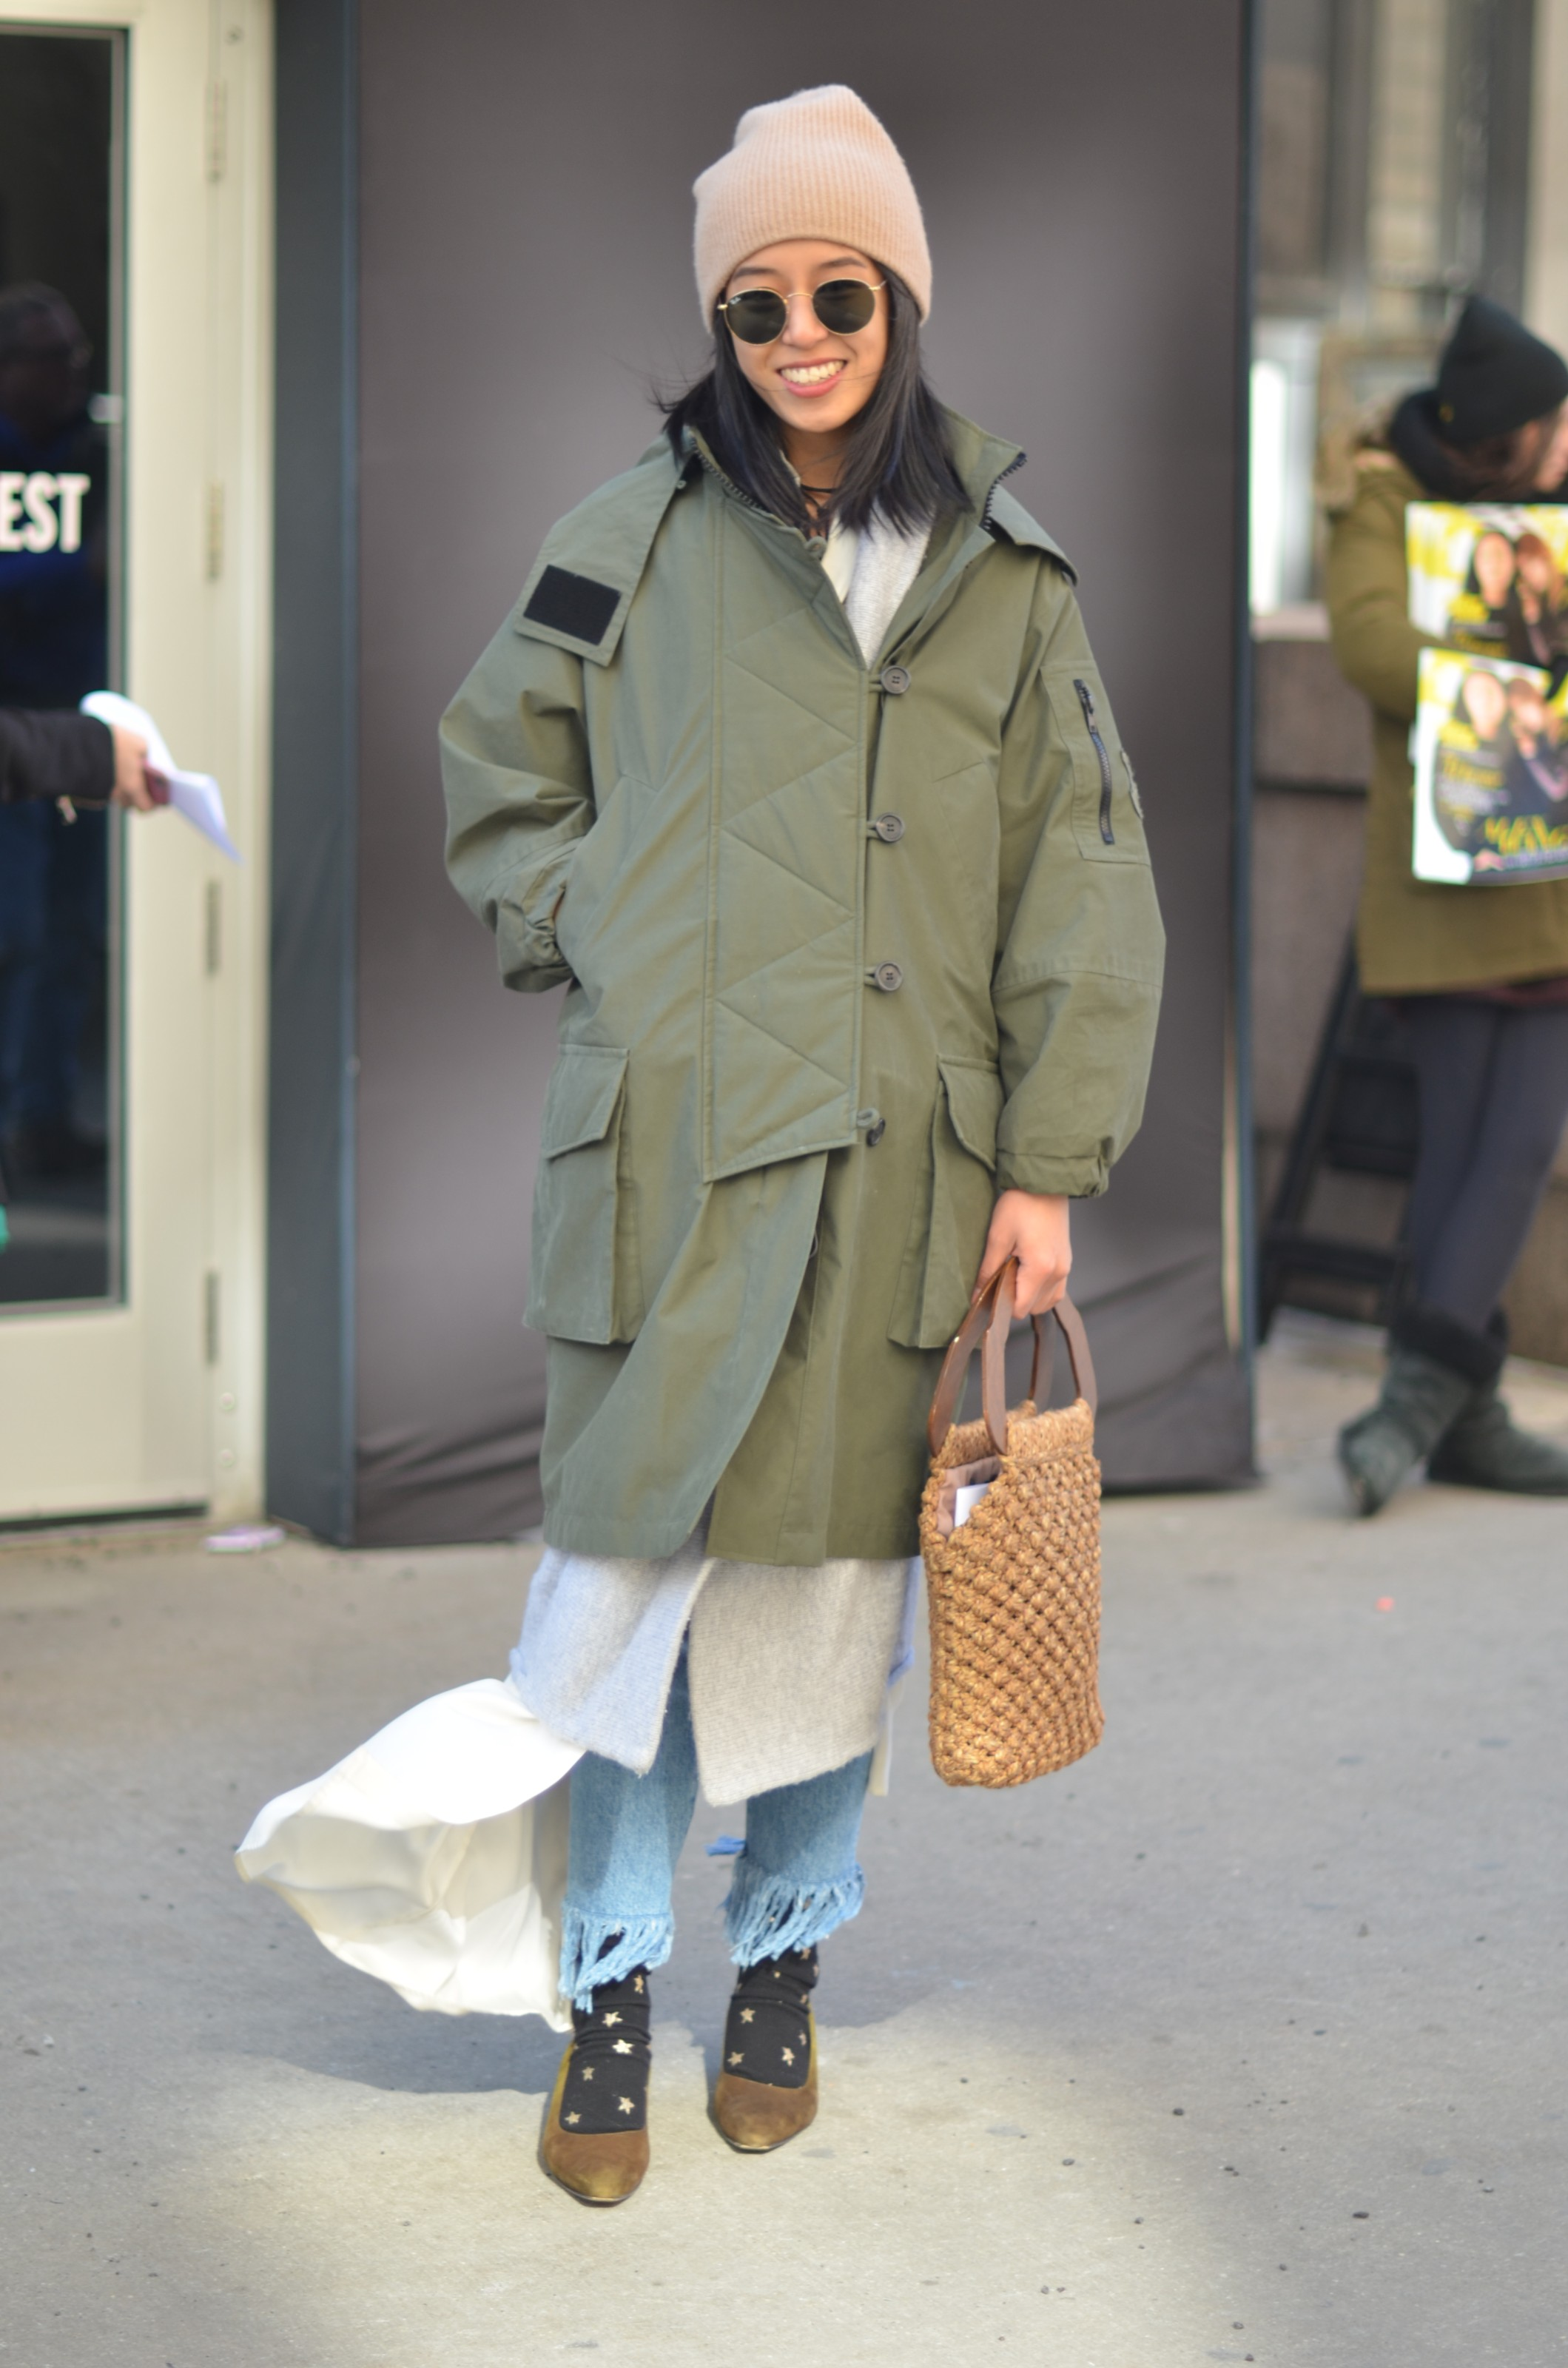 Asian girl in winter outfit